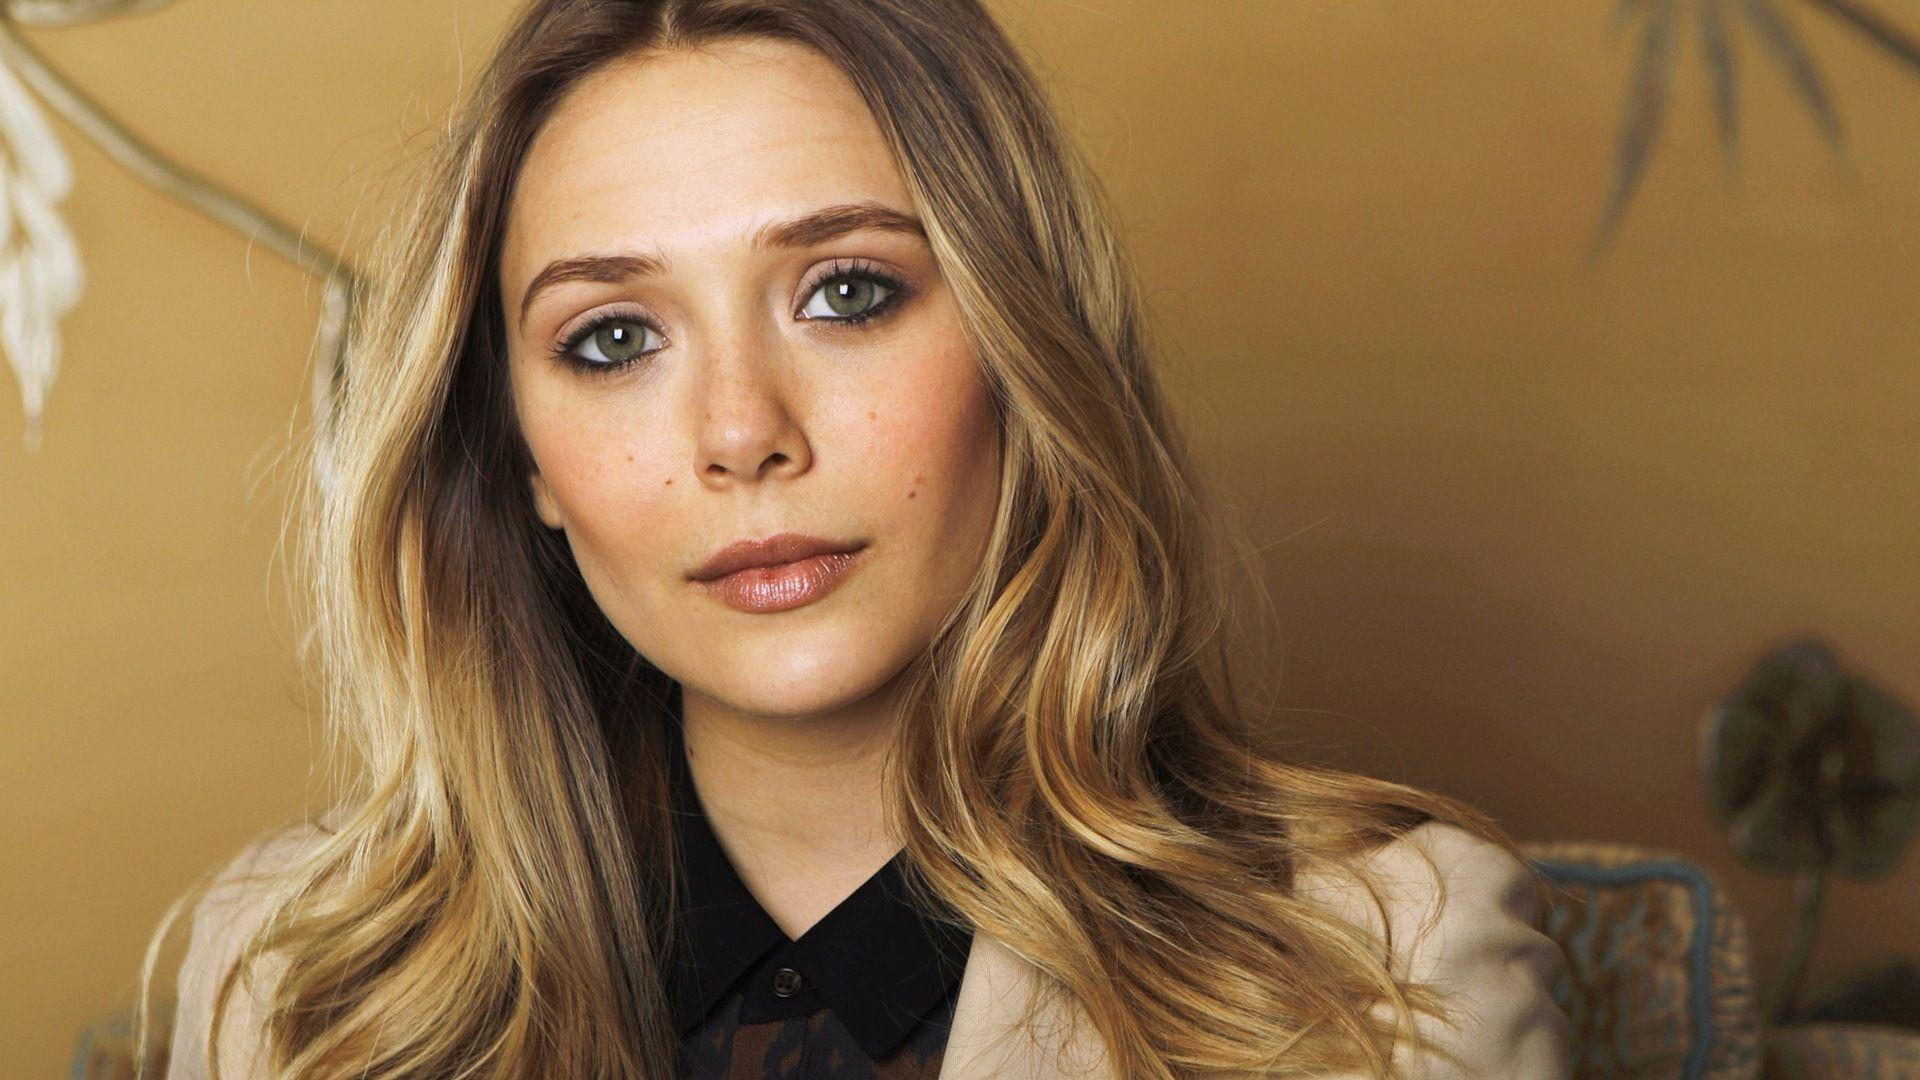 Elizabeth Olsen Wallpaper 38147 1920x1080 px ~ HDWallSource.com